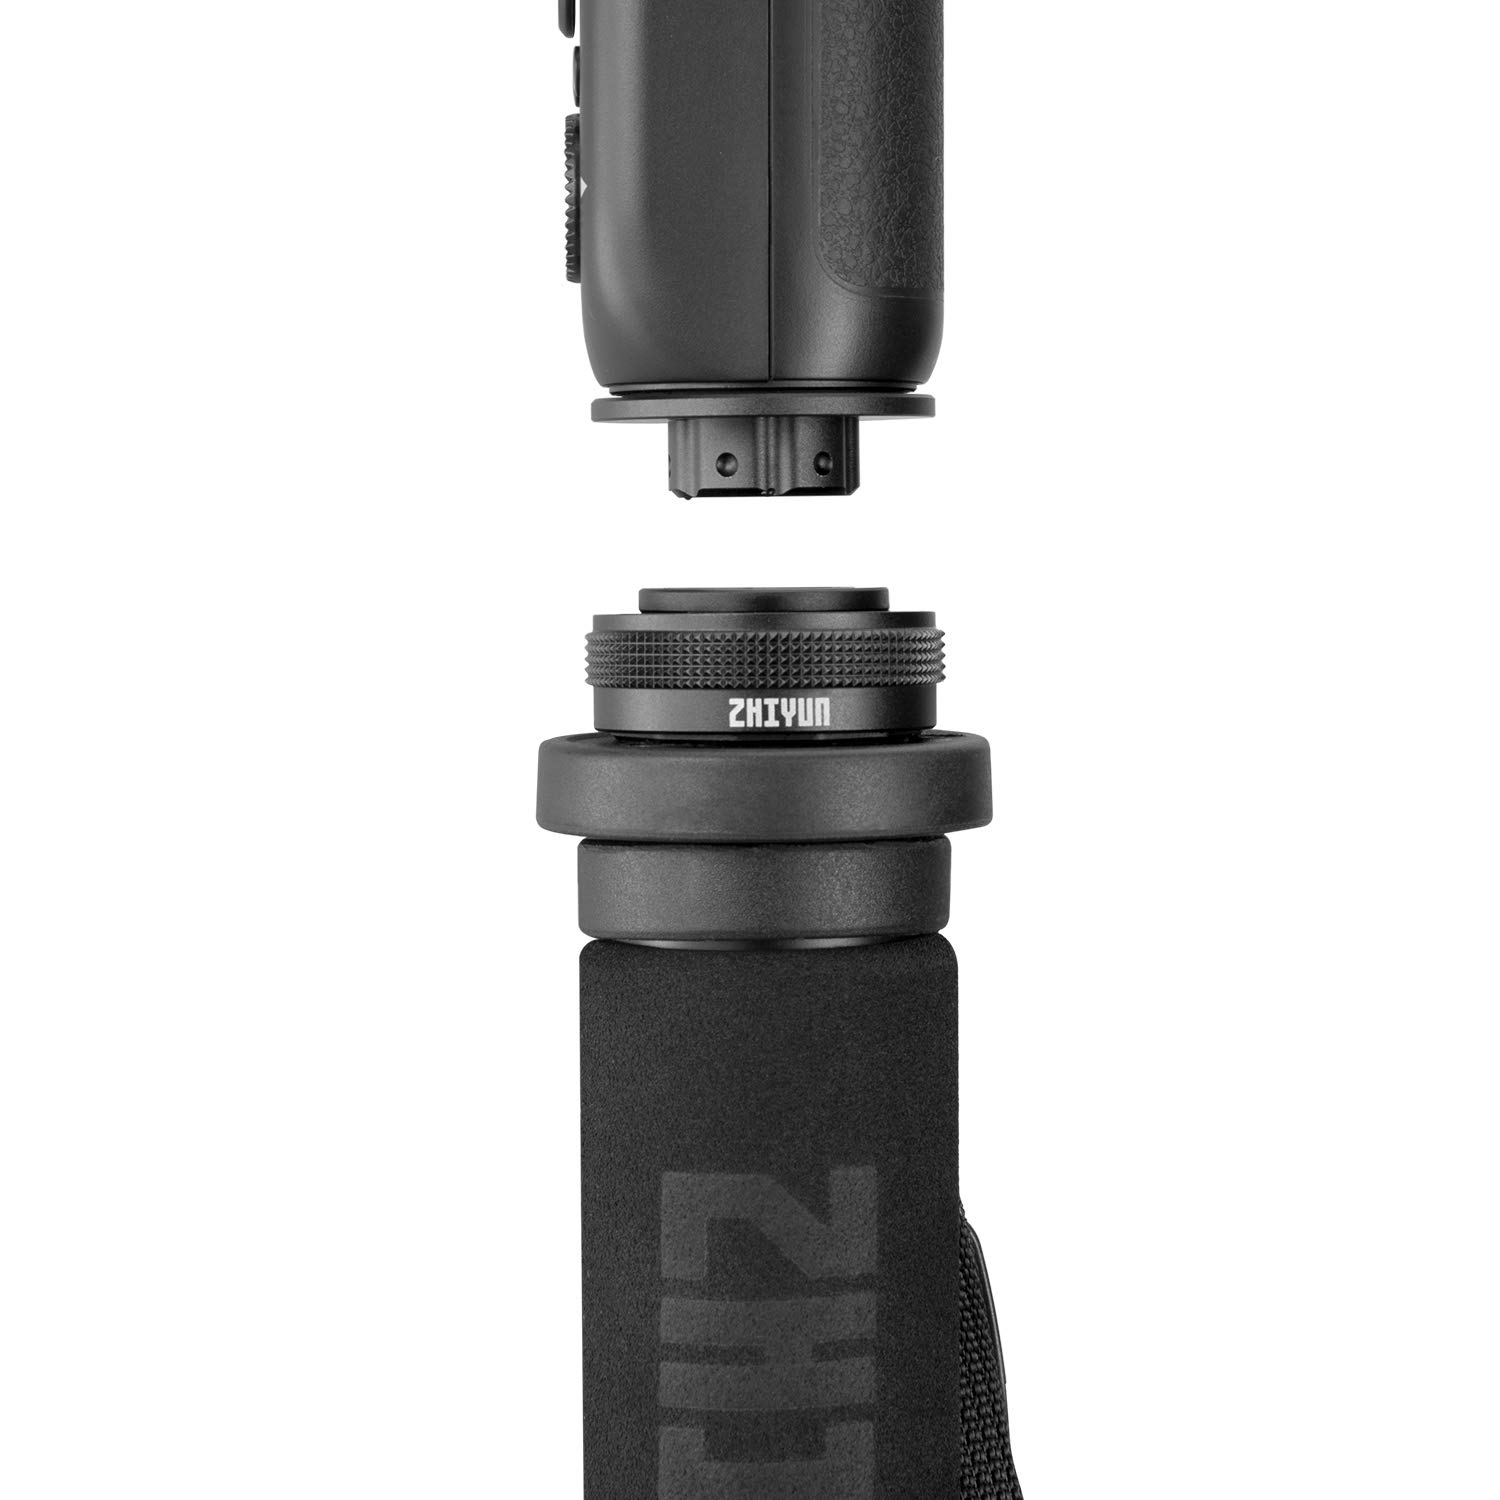 Zhiyun Accessories TransMount phone Holder with Crown Gear Phone Clamp Adapter for Handheld Gimbal Stabilizer WEEBILL LAB,Crane 3 Phone Holder